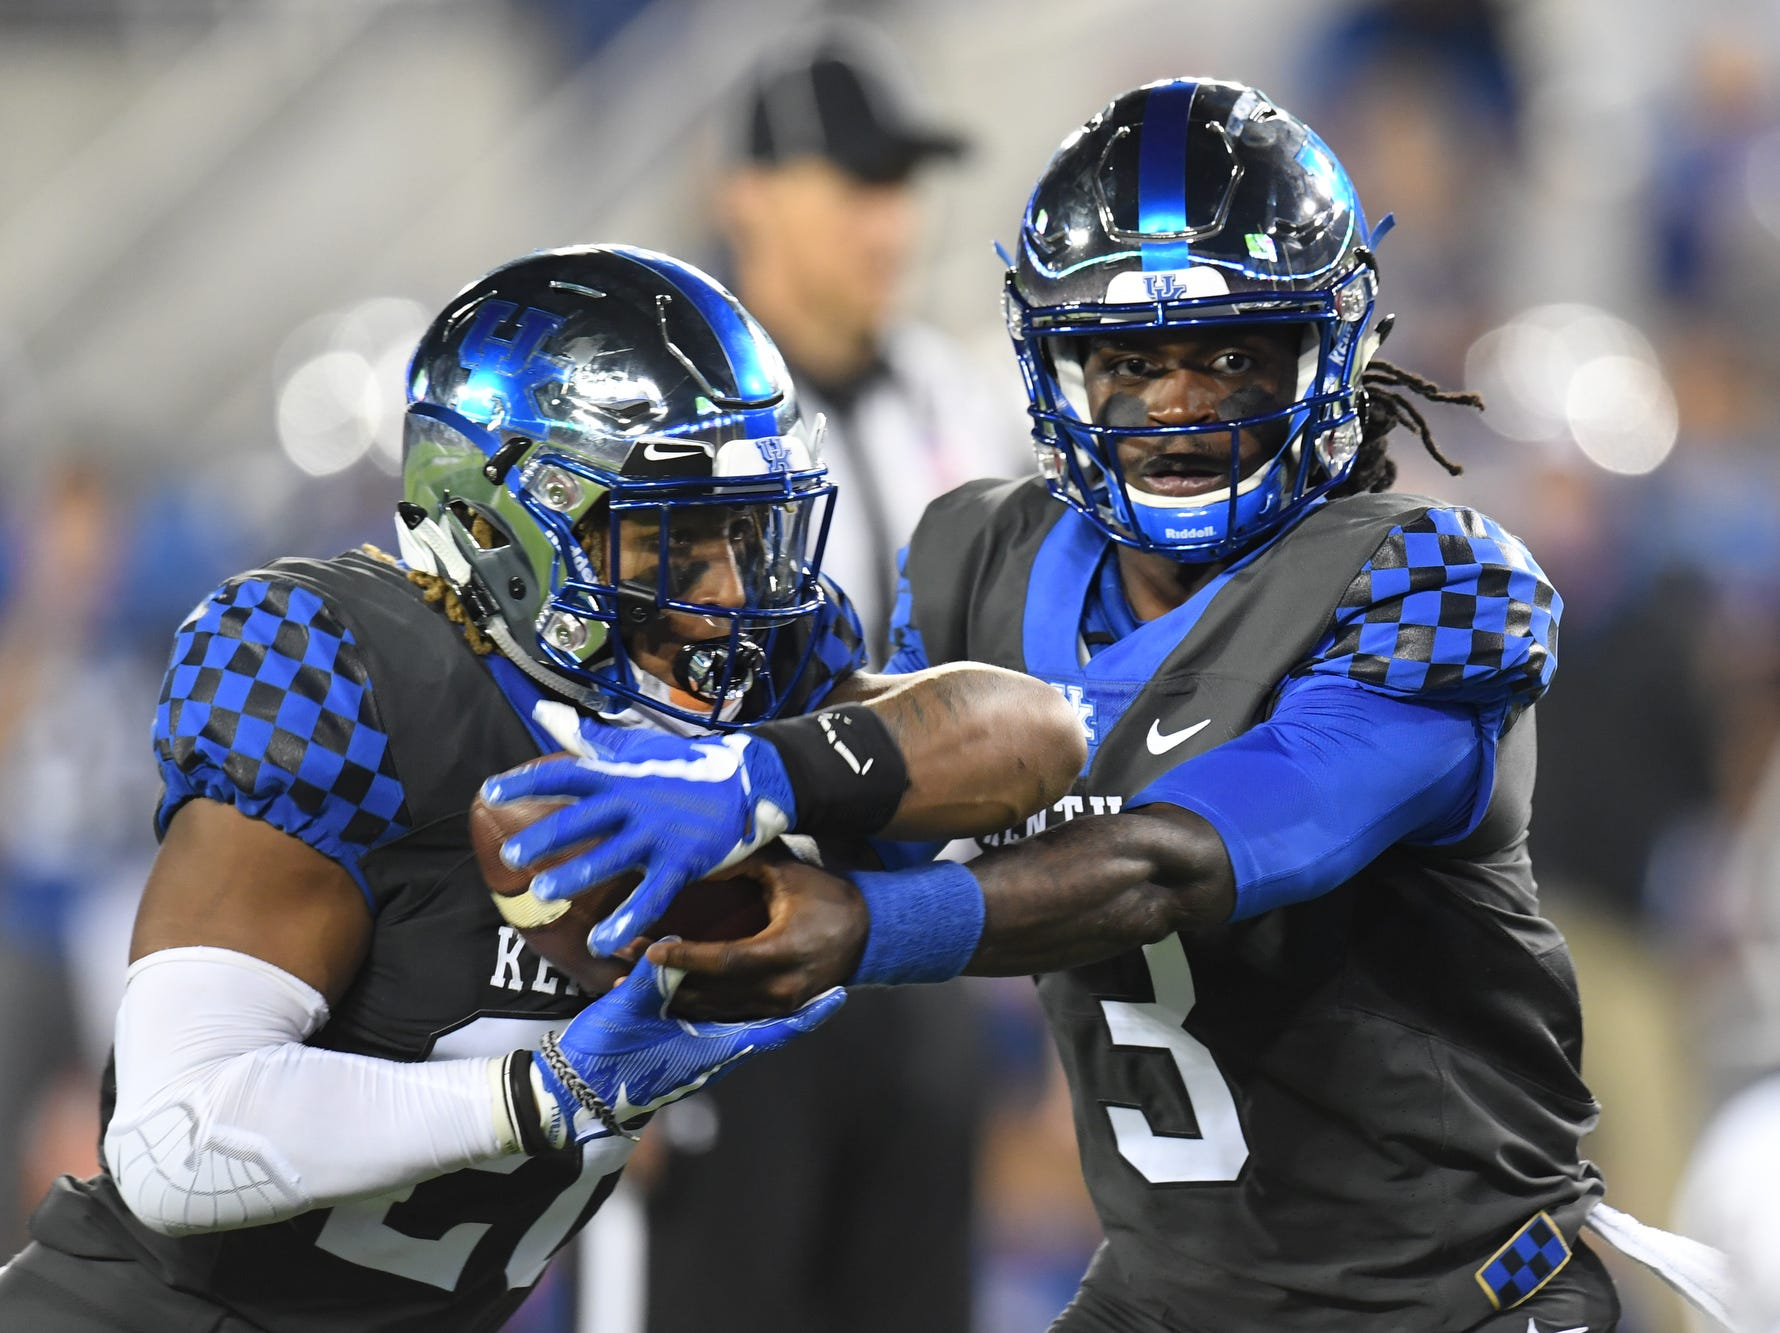 UK QB Terry Wilson hands off the ball to RB Benny Snell, Jr. during the University of Kentucky football game against South Carolina at Kroger Field in Lexington, Kentucky on Saturday, September 29, 2018.